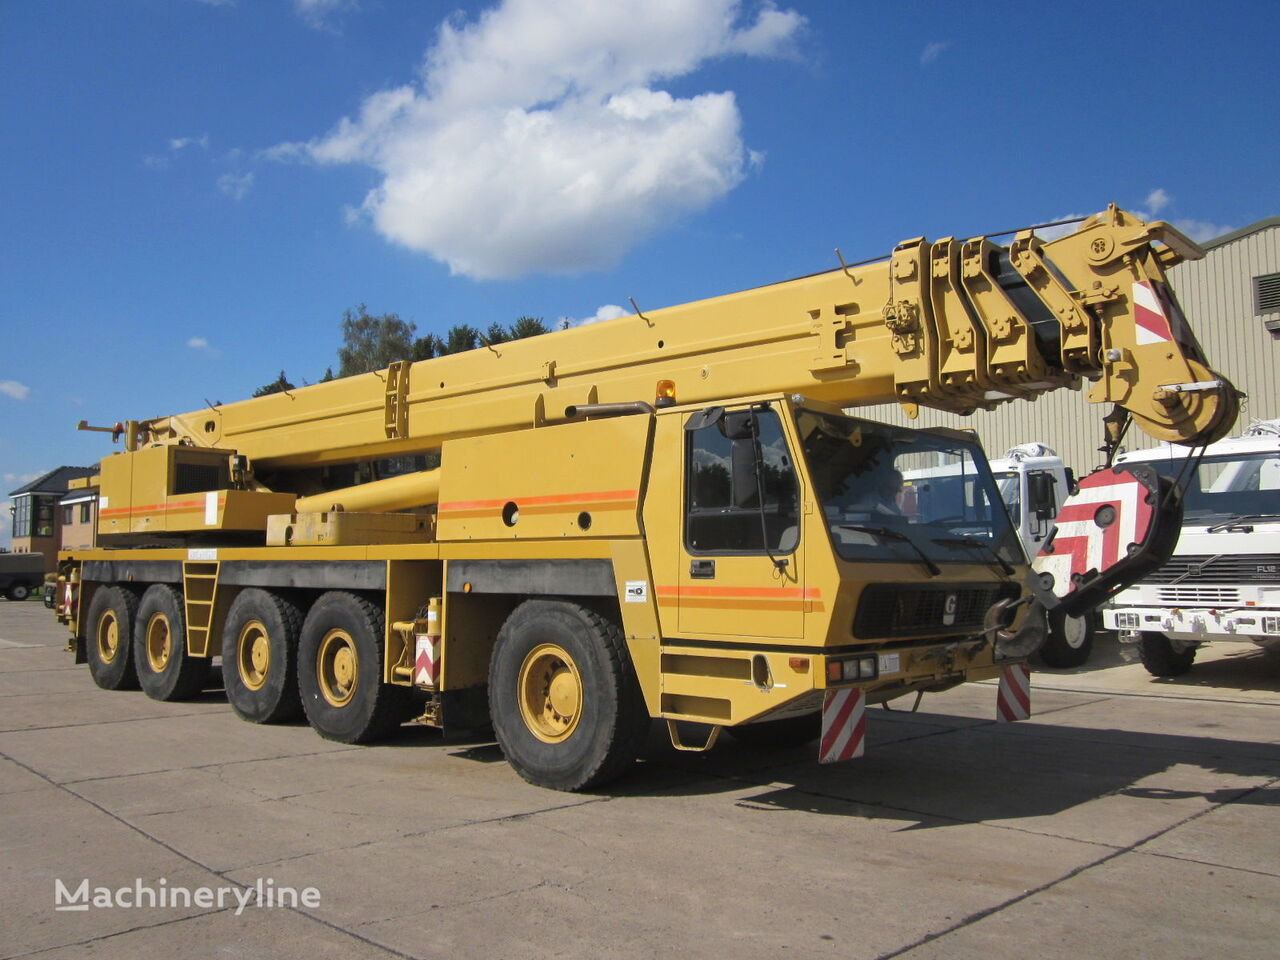 Tower Crane Vs Mobile Crane : Grove gmk ton mobile cranes for sale all terrain